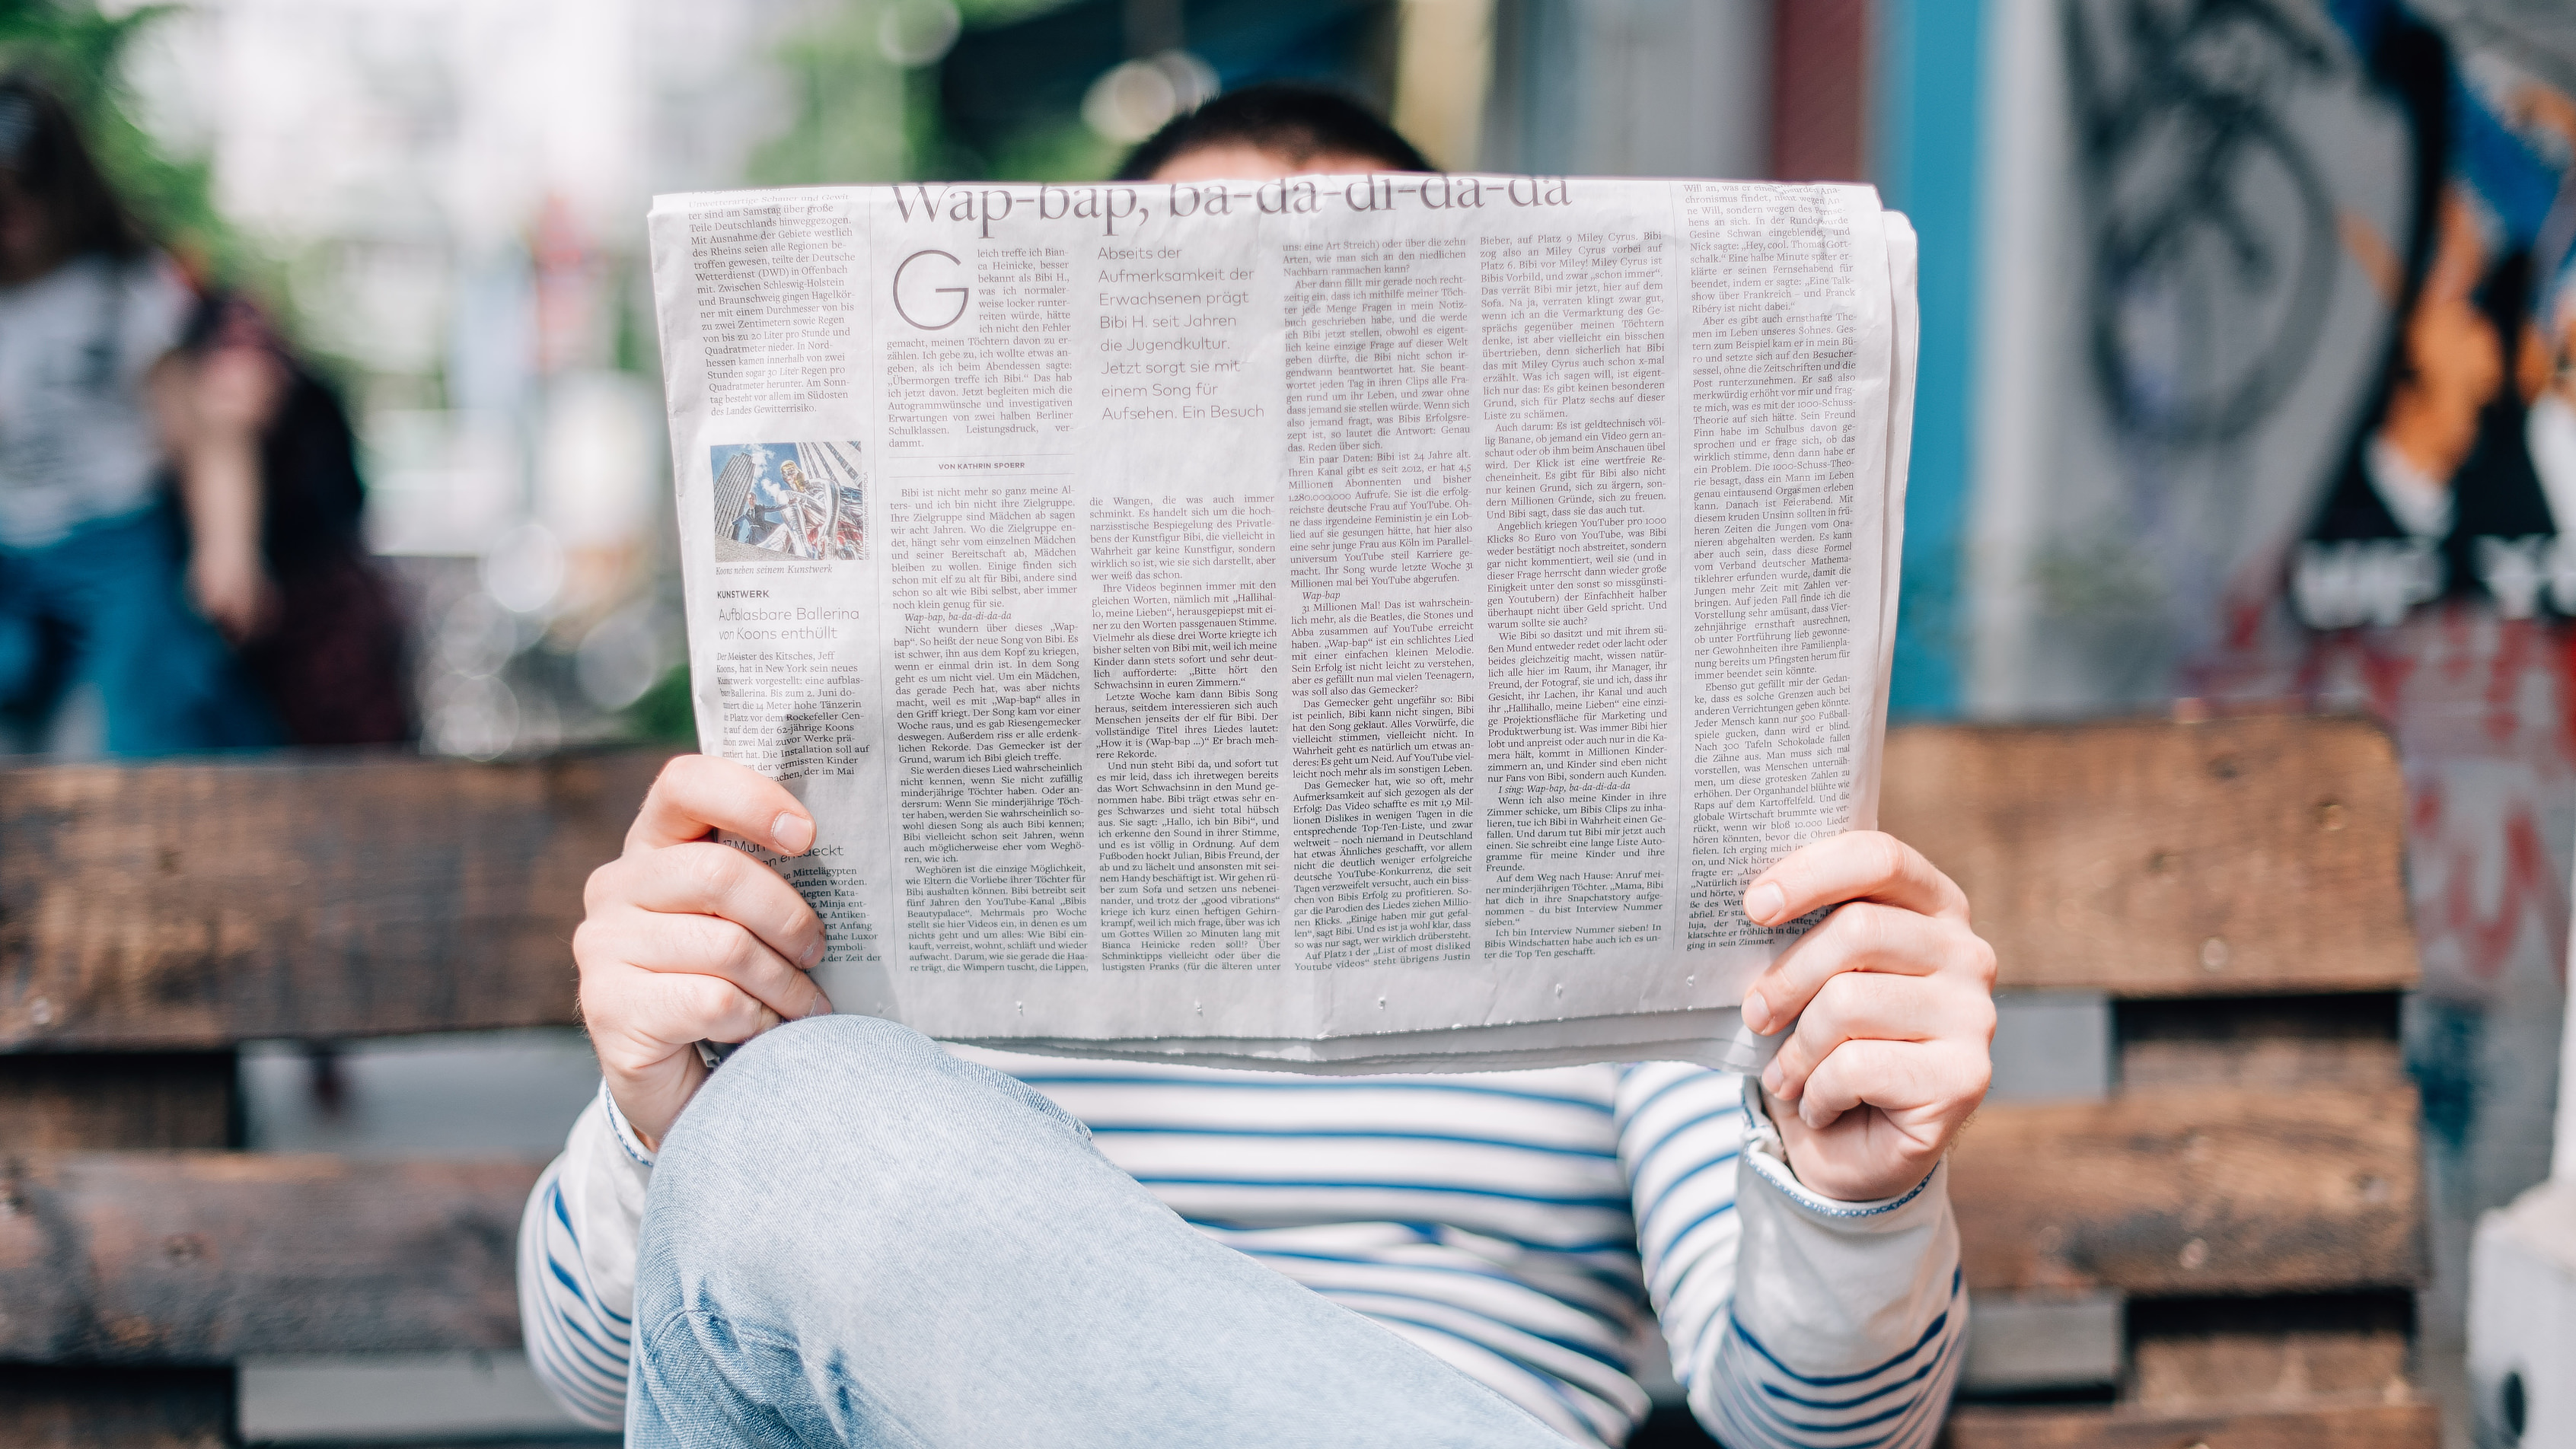 The Media; The Good, The Bad, The Ugly! Here are 5 tips to spot Fake News